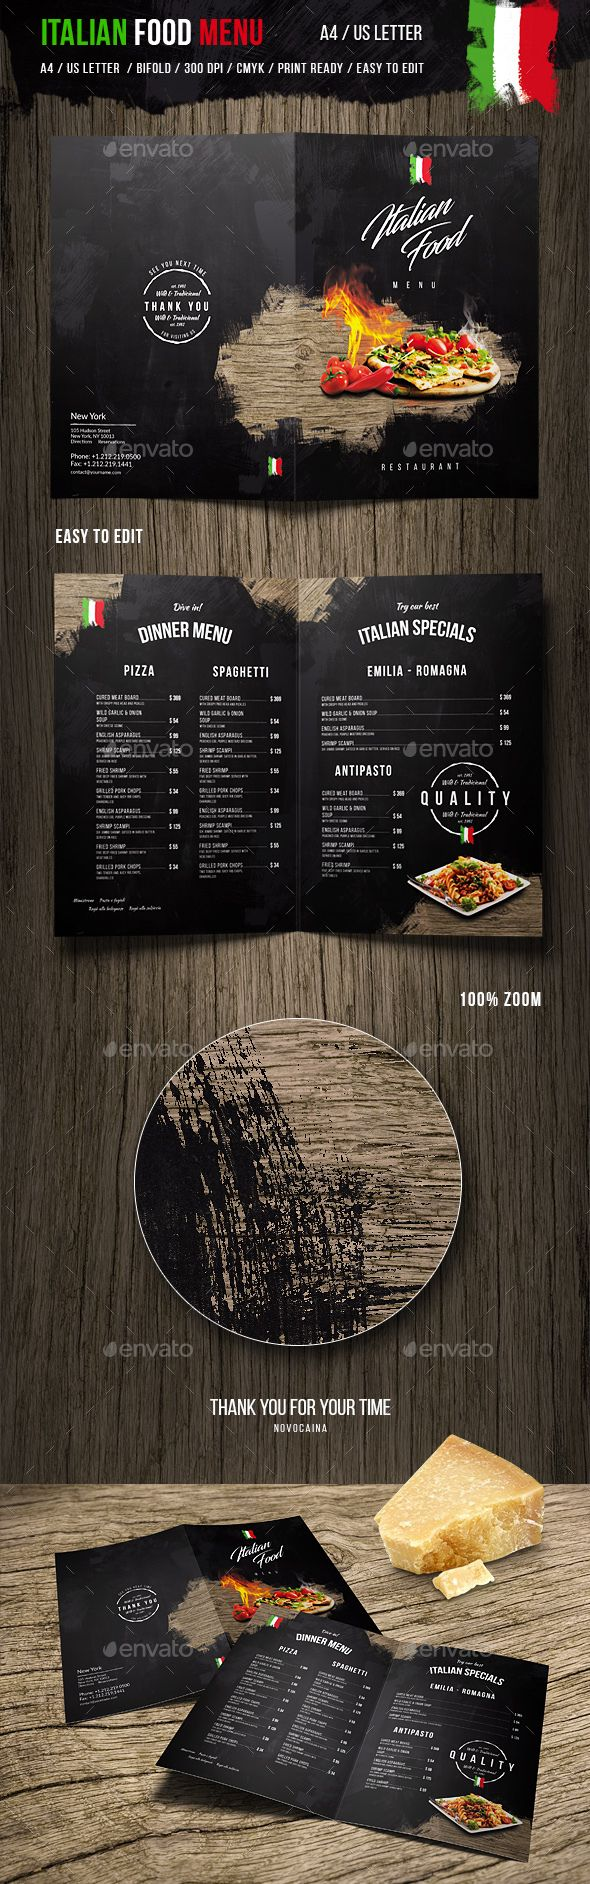 Italian Food Menu  A4 and US Letter — Photoshop PSD #vintage #menu design • Download ➝ https://graphicriver.net/item/italian-food-menu-a4-and-us-letter/19981197?ref=pxcr